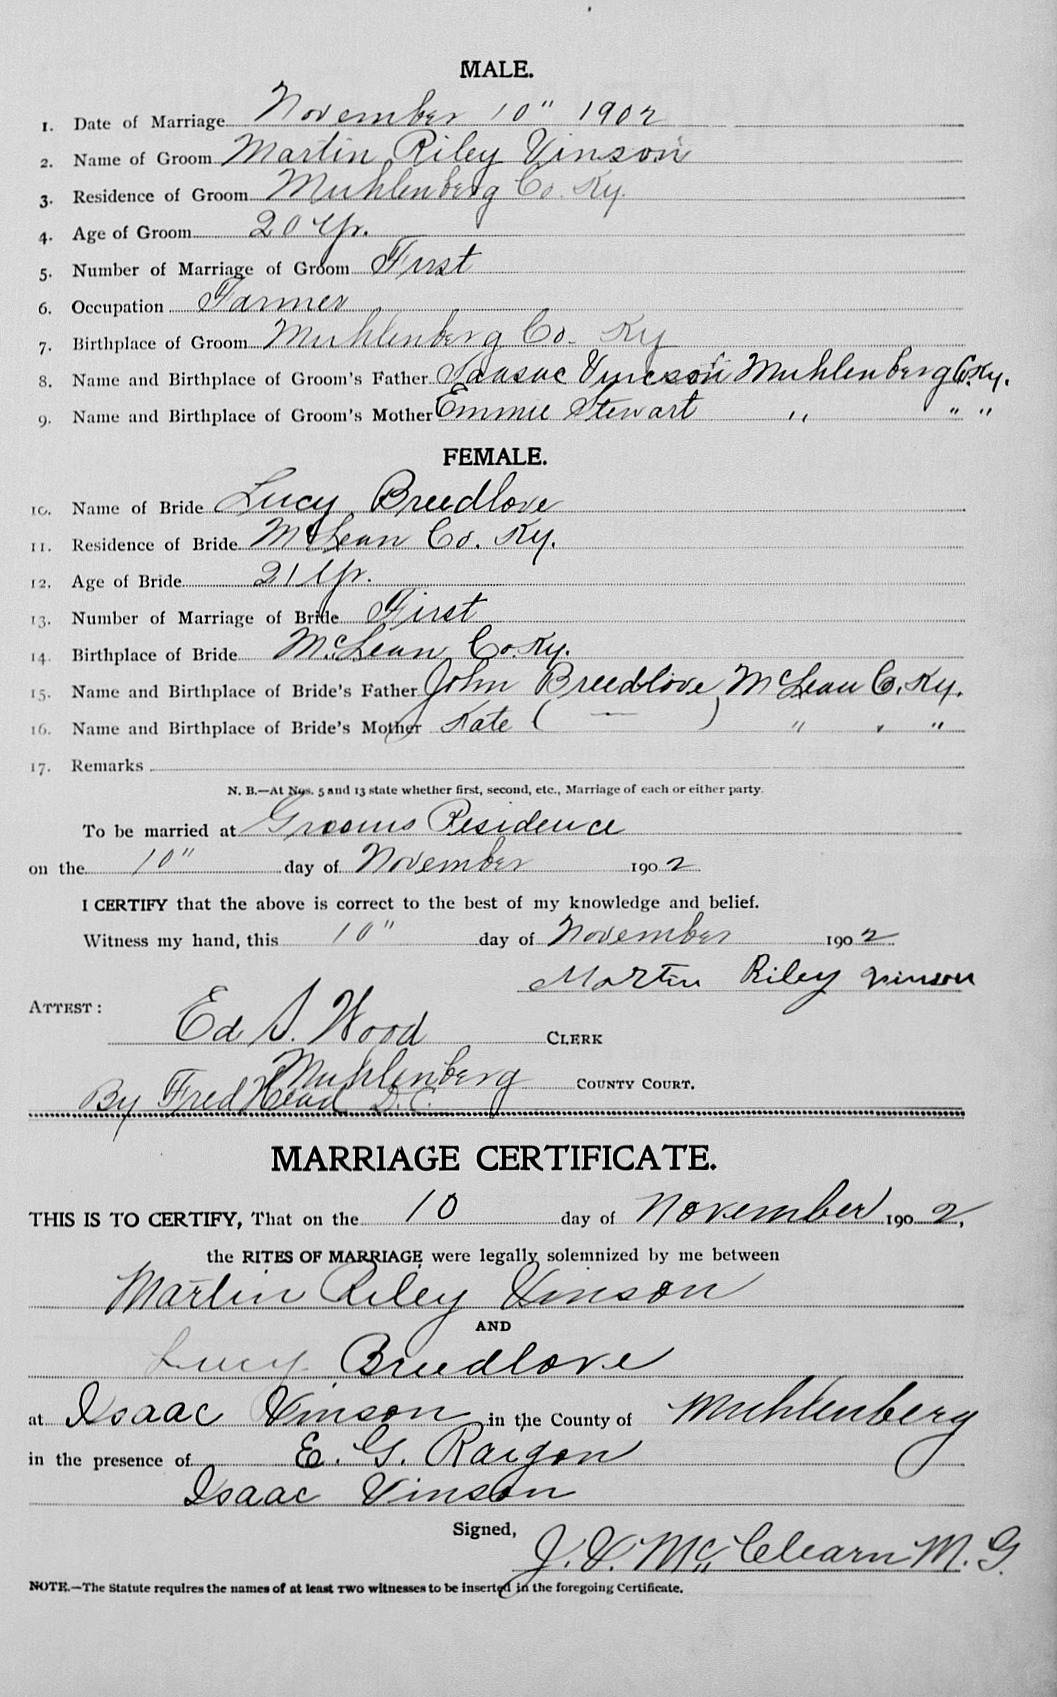 Martin Riley Vincent and Lucy Johnson Breedlove Marriage Record